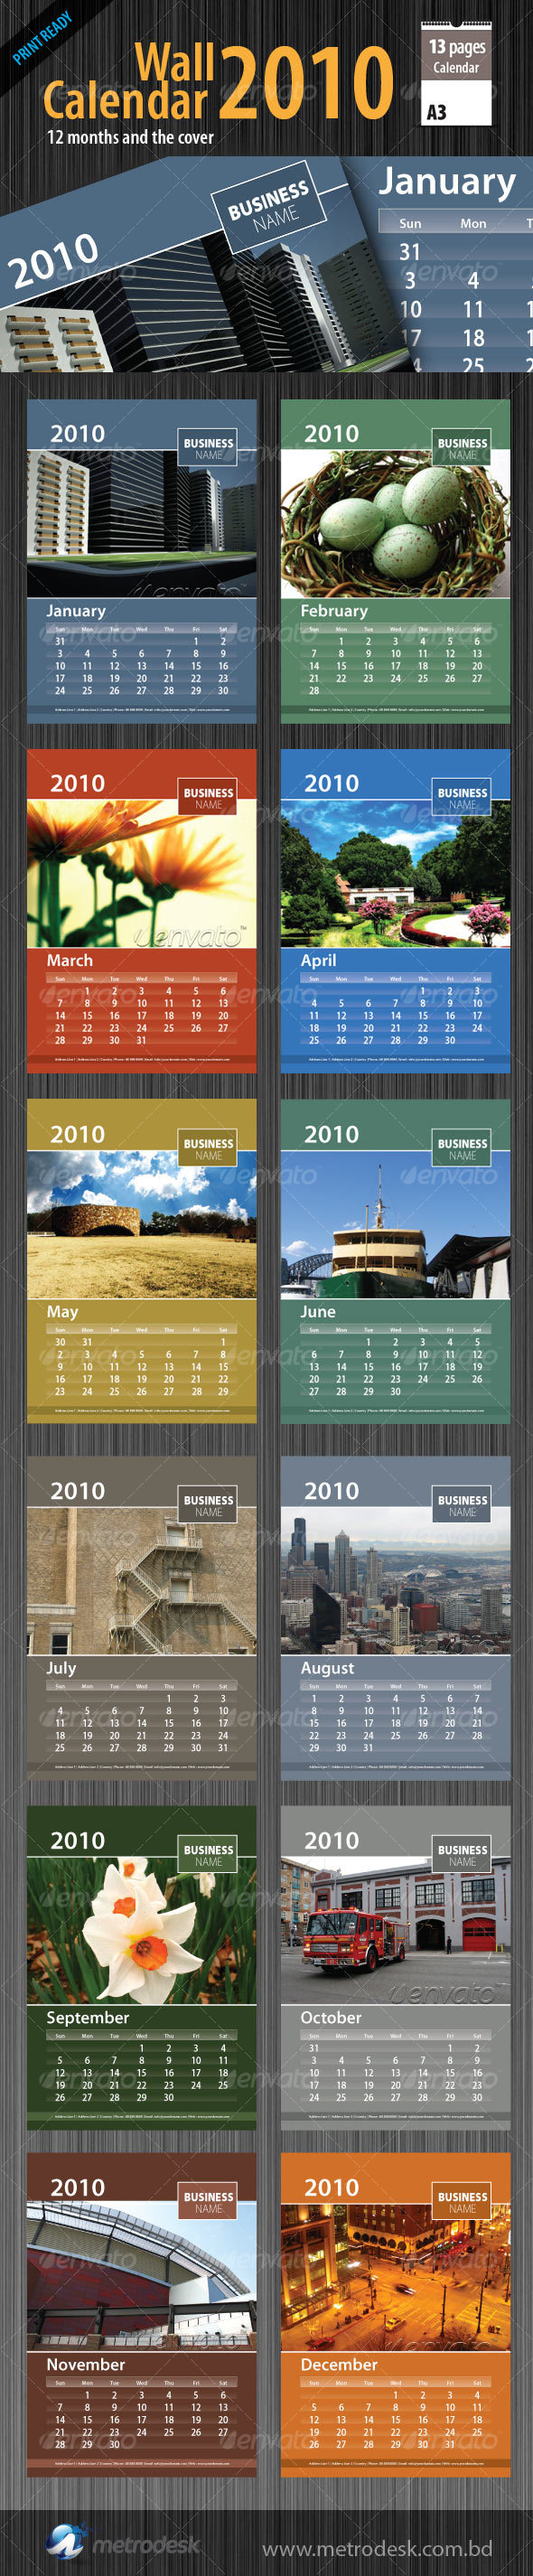 Wall Calendar 2010 [ 12 page ]